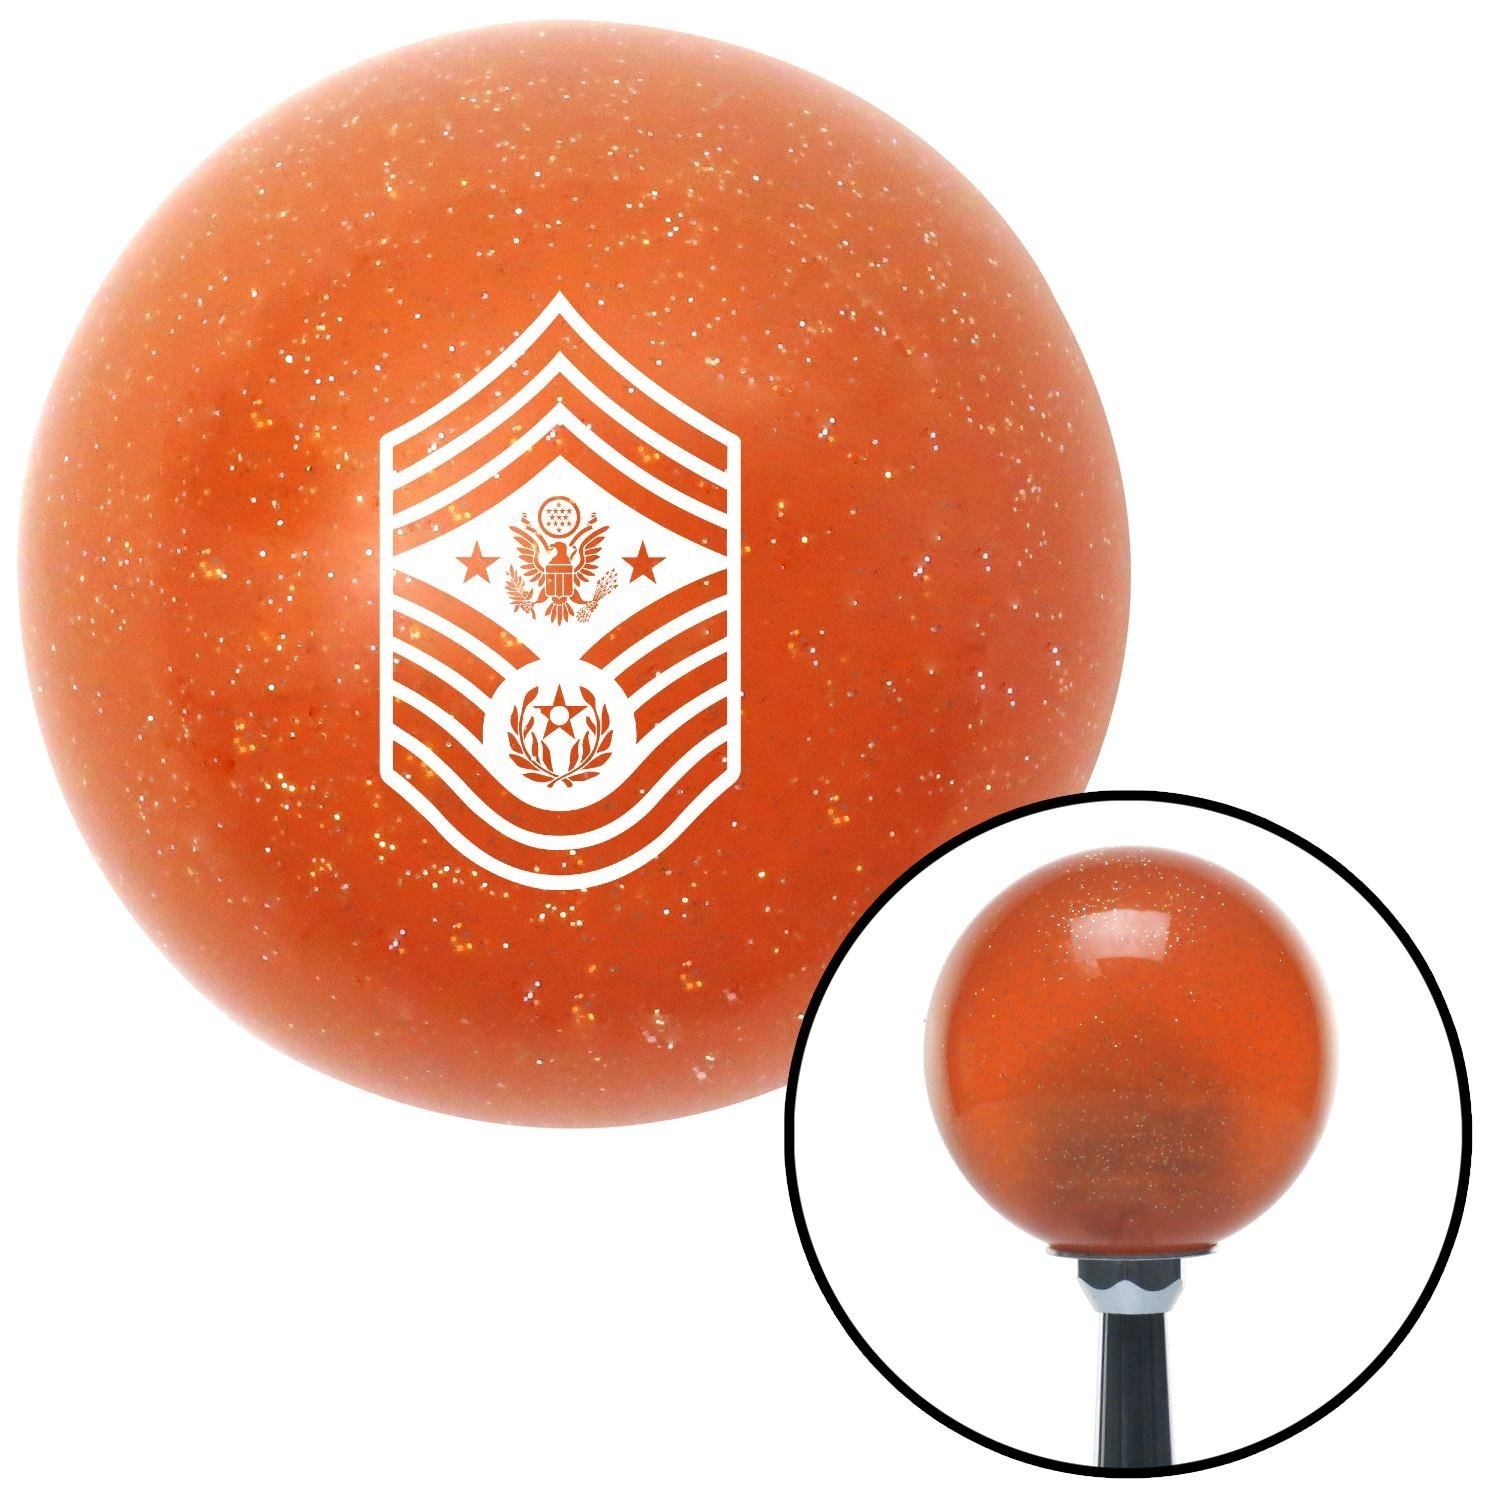 American Shifter 116076 Red Stripe Shift Knob with M16 x 1.5 Insert Black Officer 01-2n Lt. and 1d Lt.